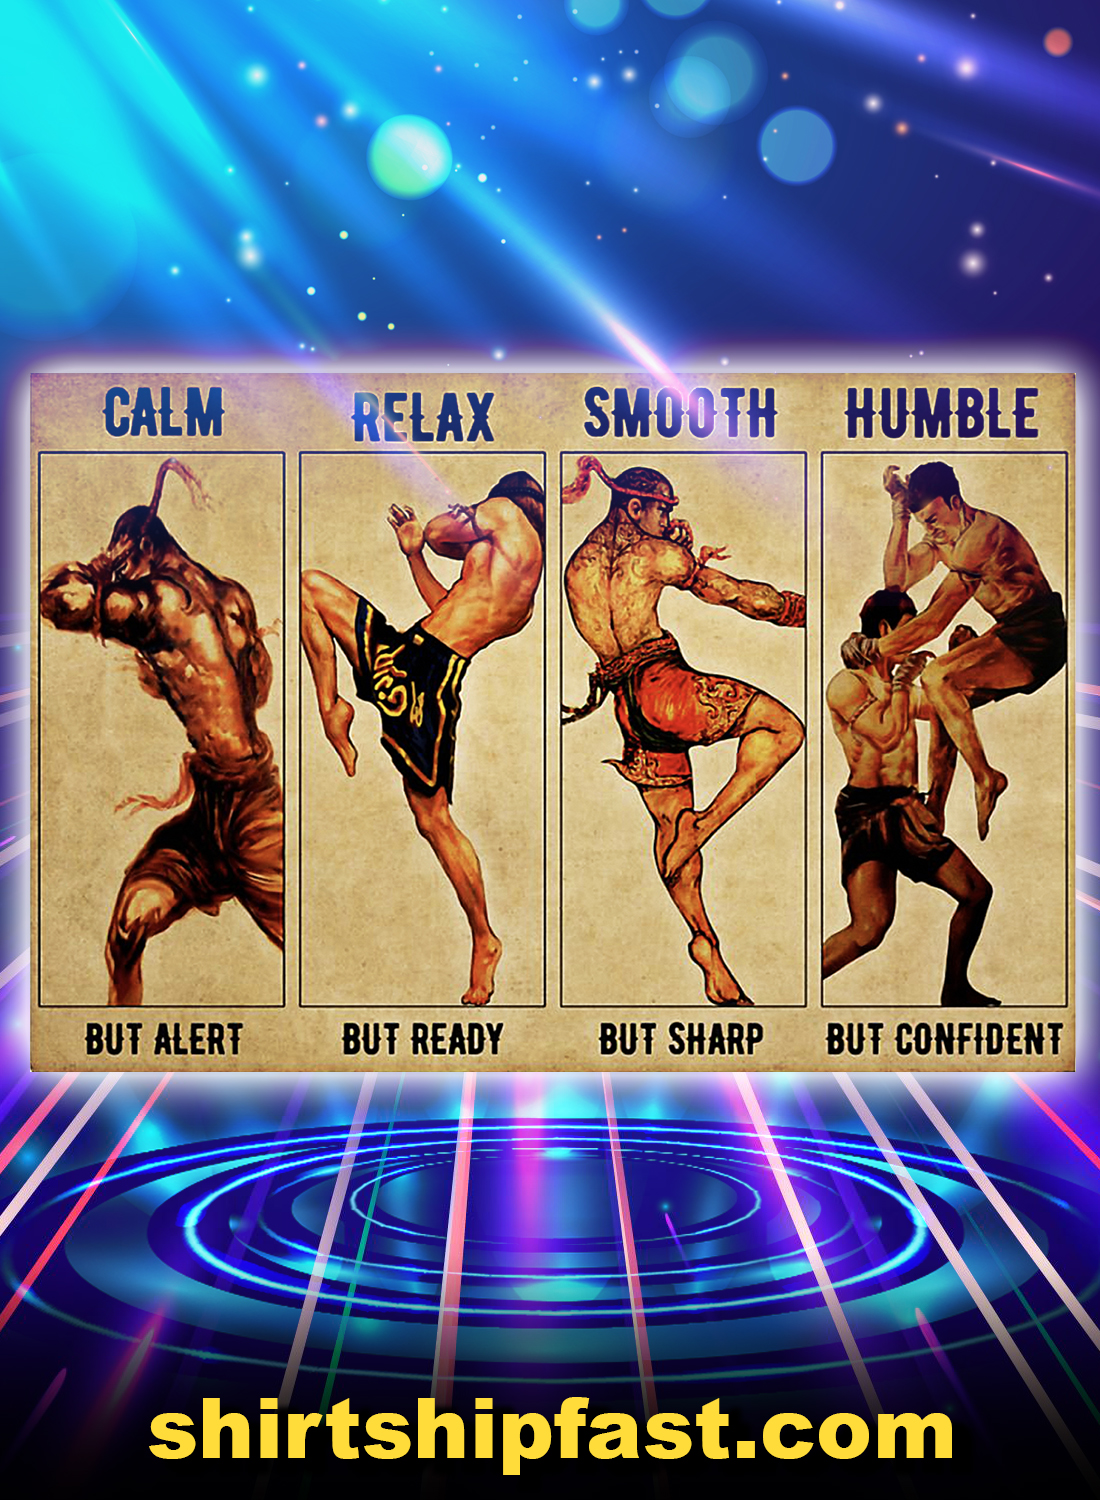 Muay thai calm relax smooth humble poster